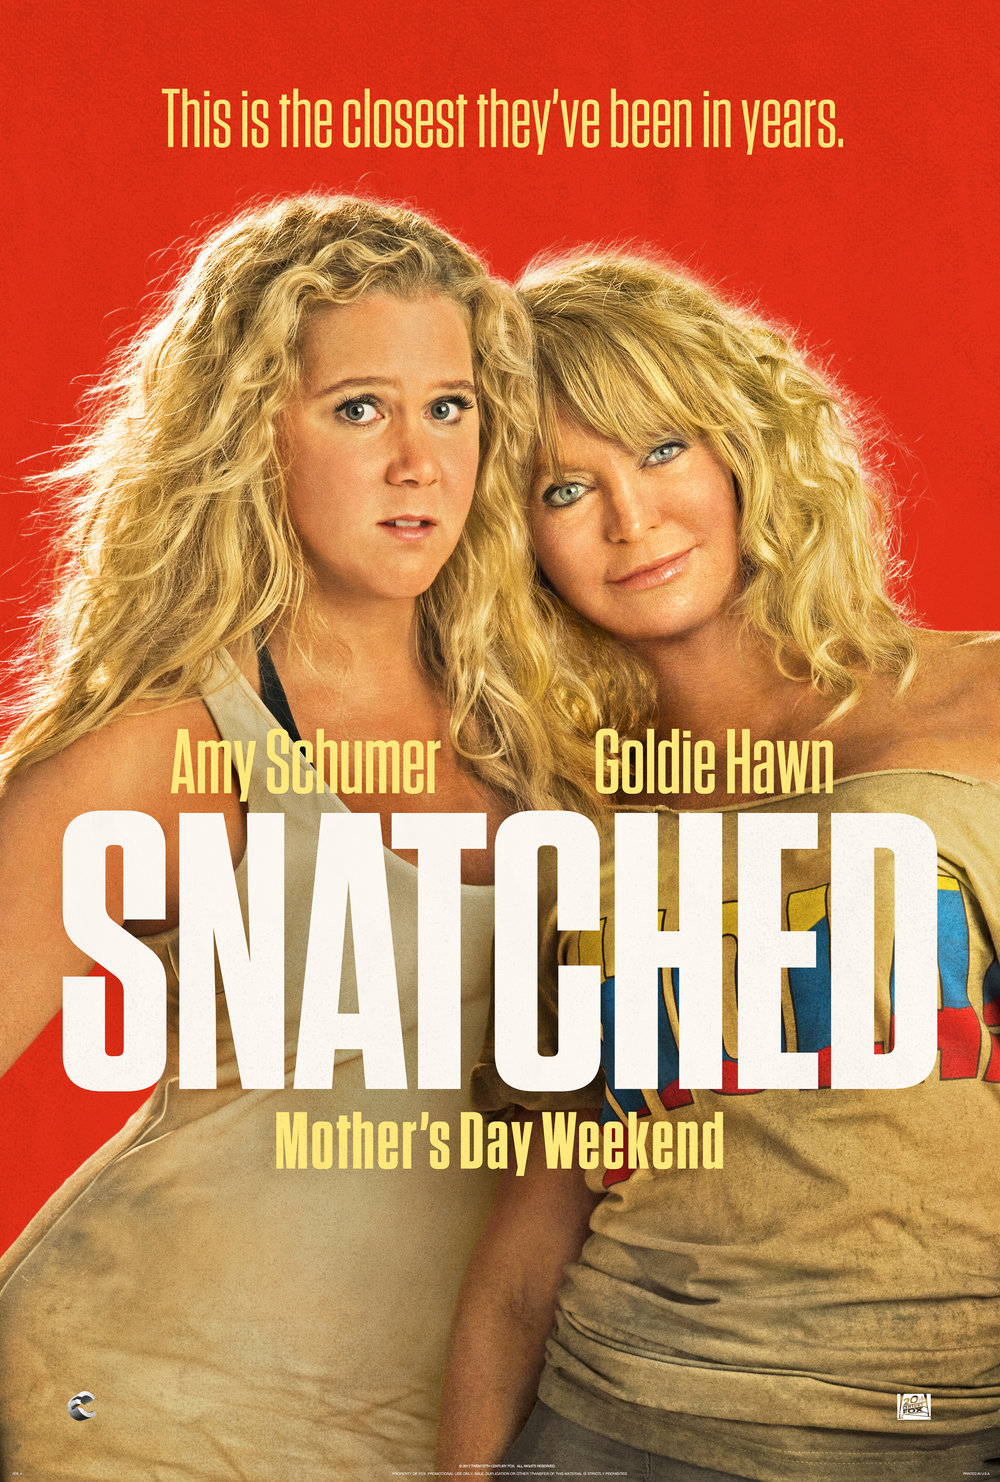 SNATCHED  R   12:452:45  4:457:20 9:40  Adult Comedy ‧ 1h 31m